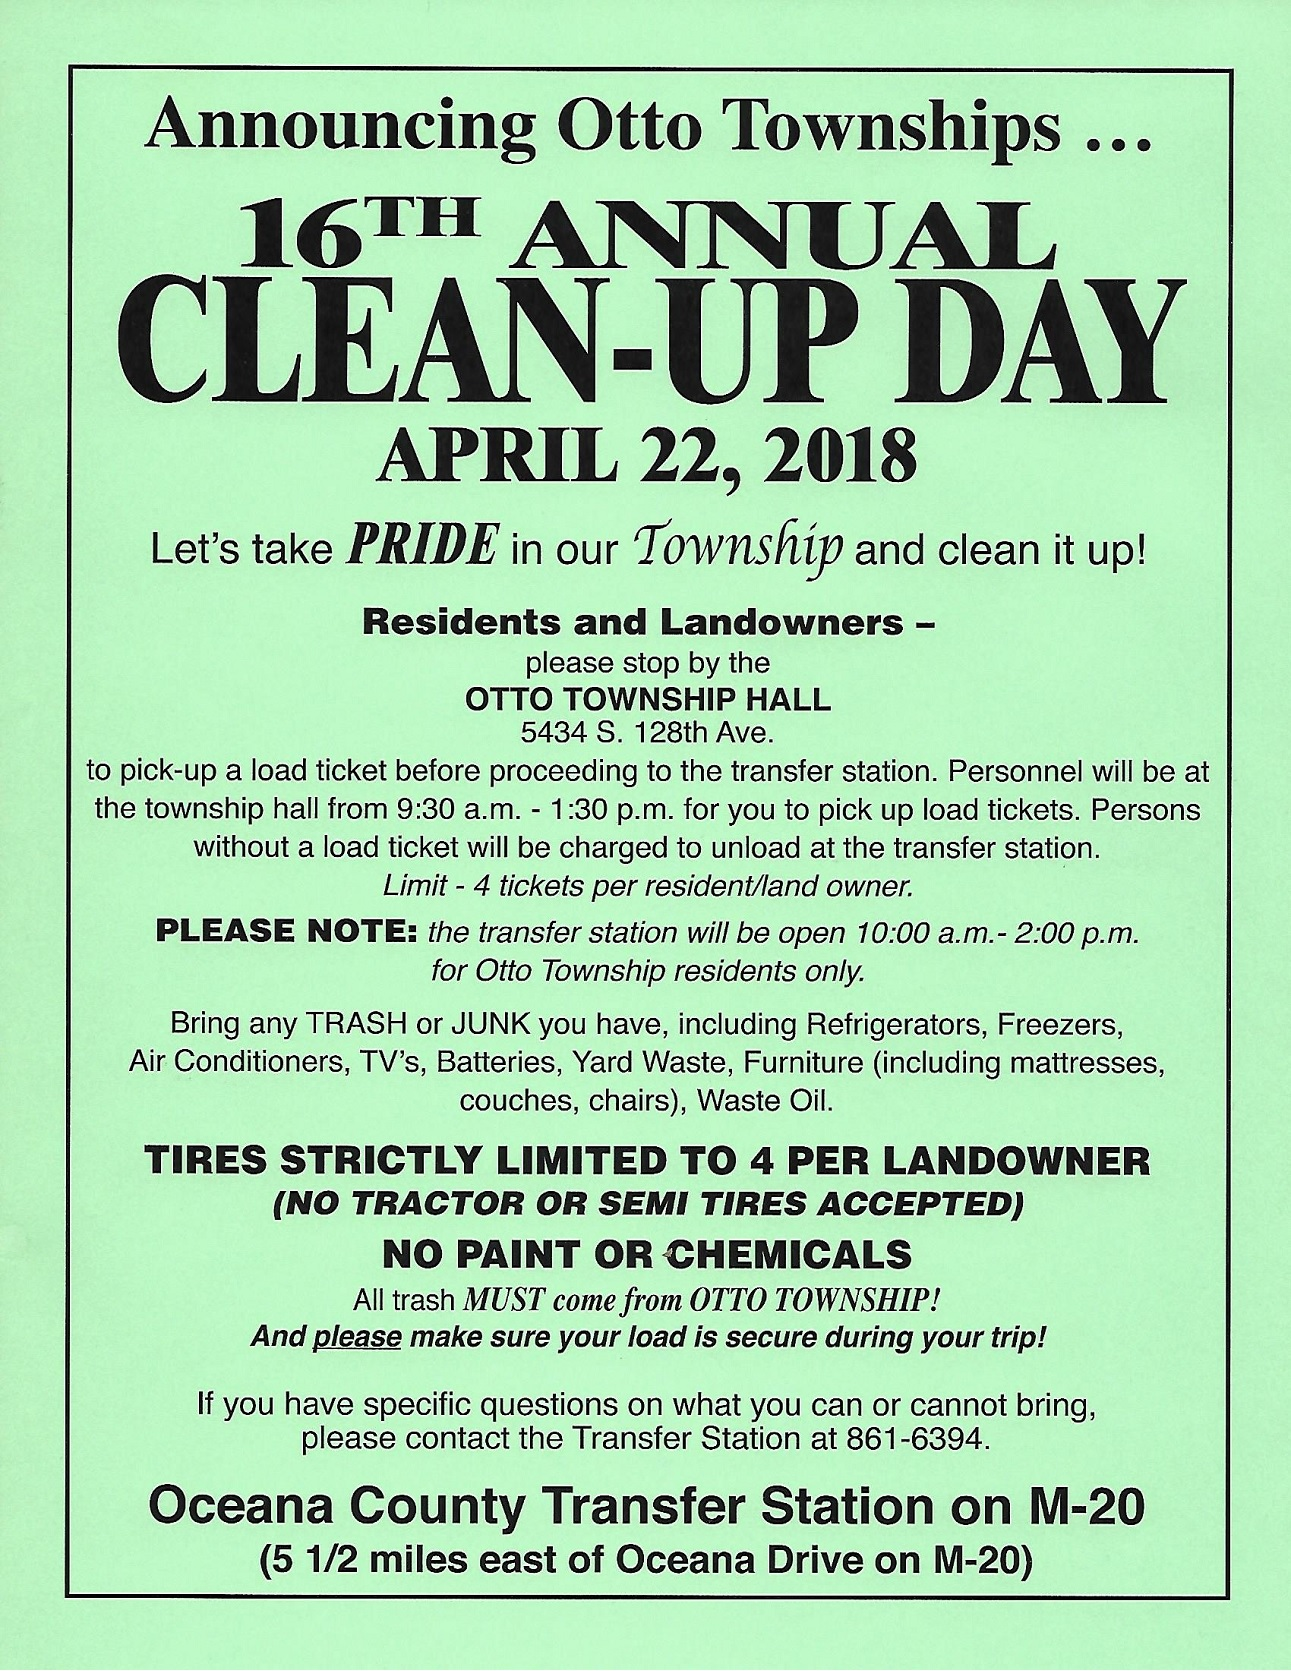 otto township clean up day